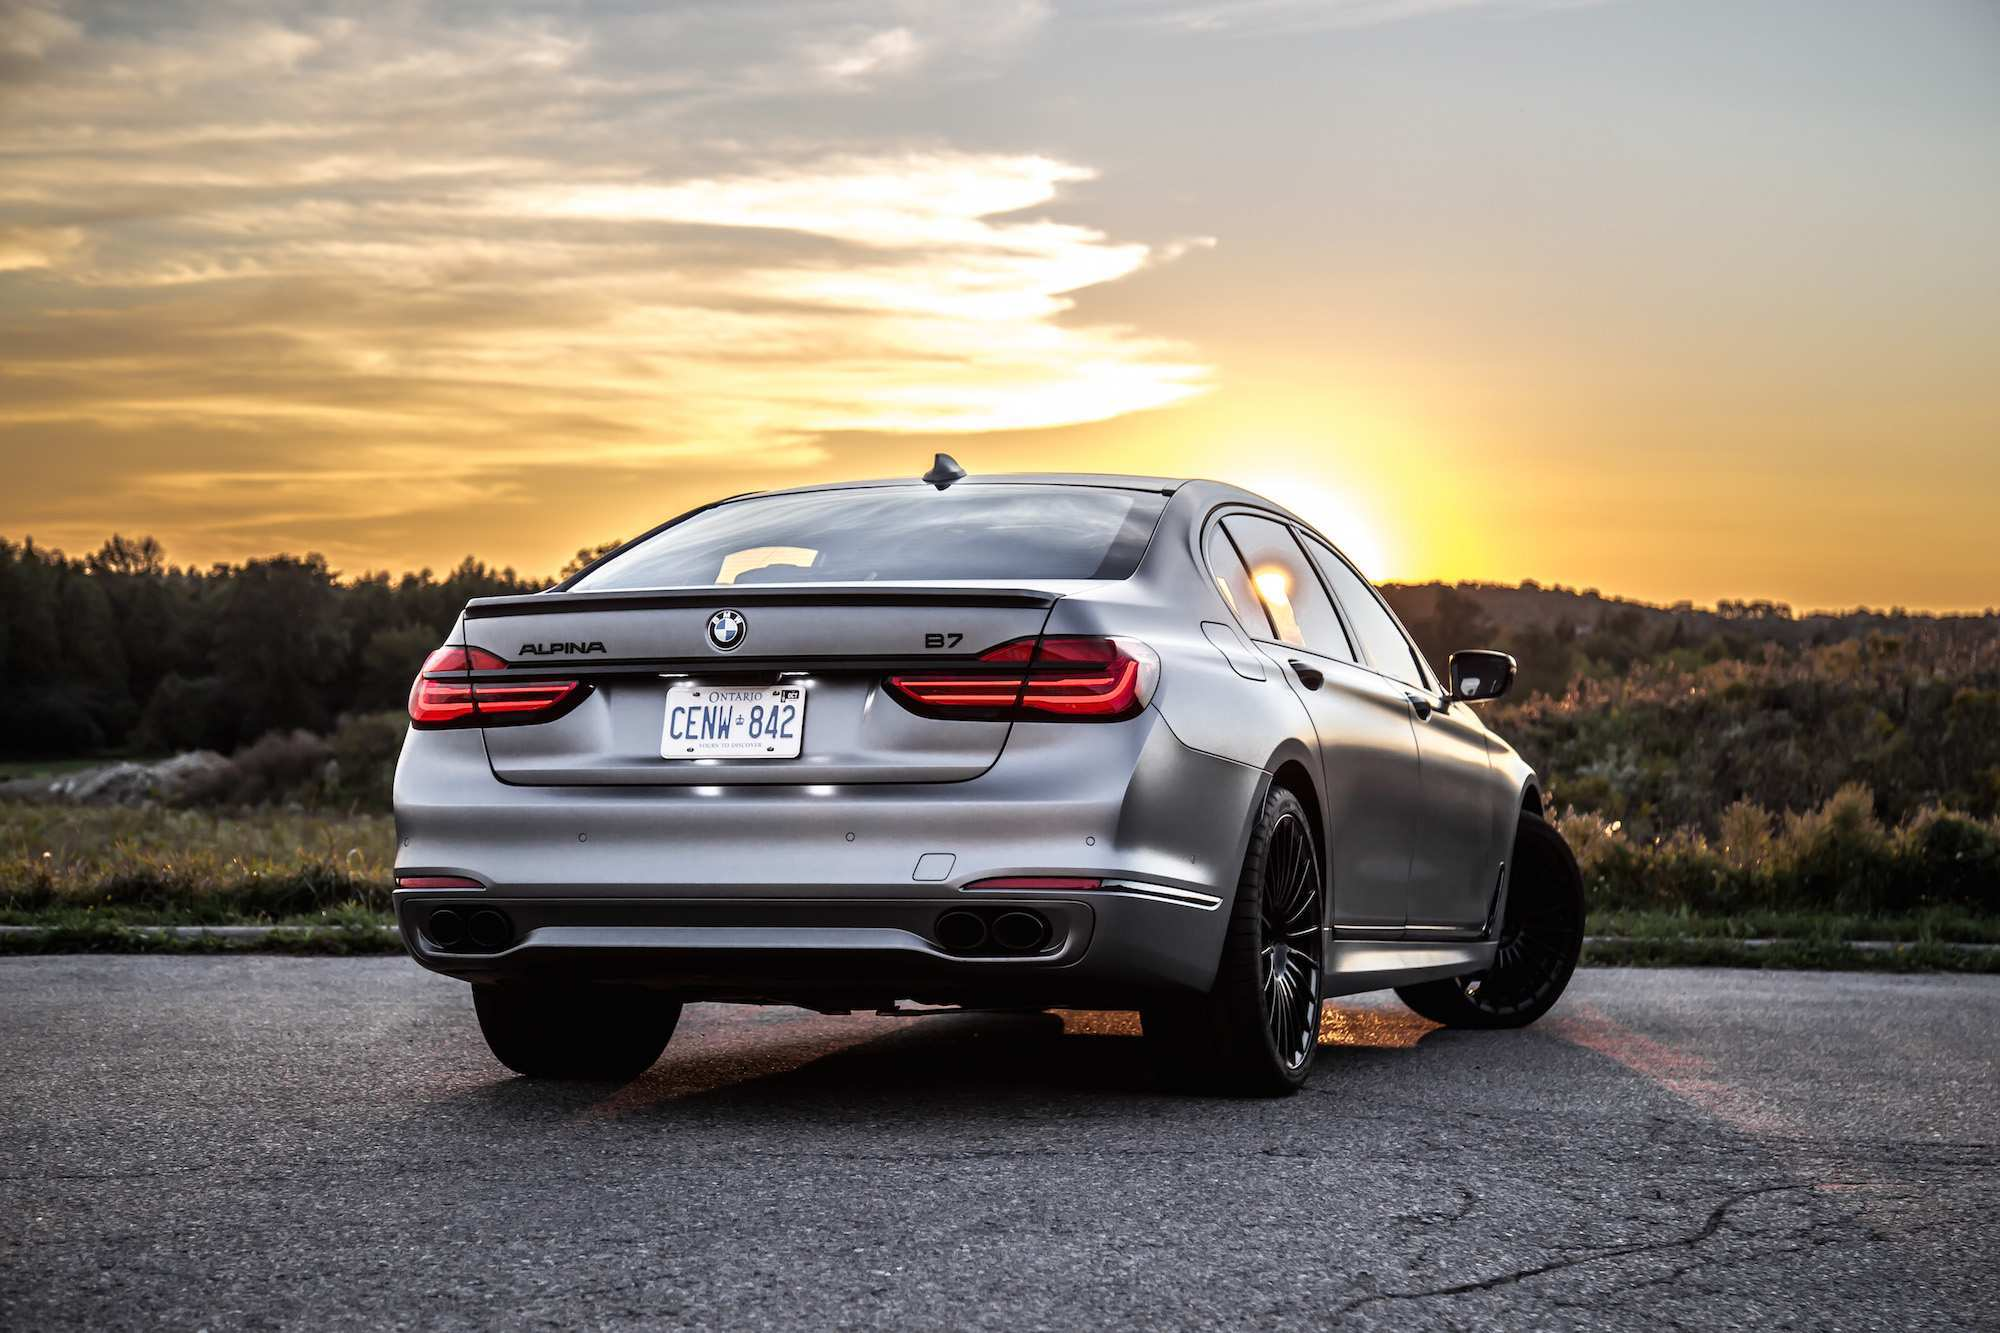 33 Gallery of 2019 Bmw B7 Reviews for 2019 Bmw B7